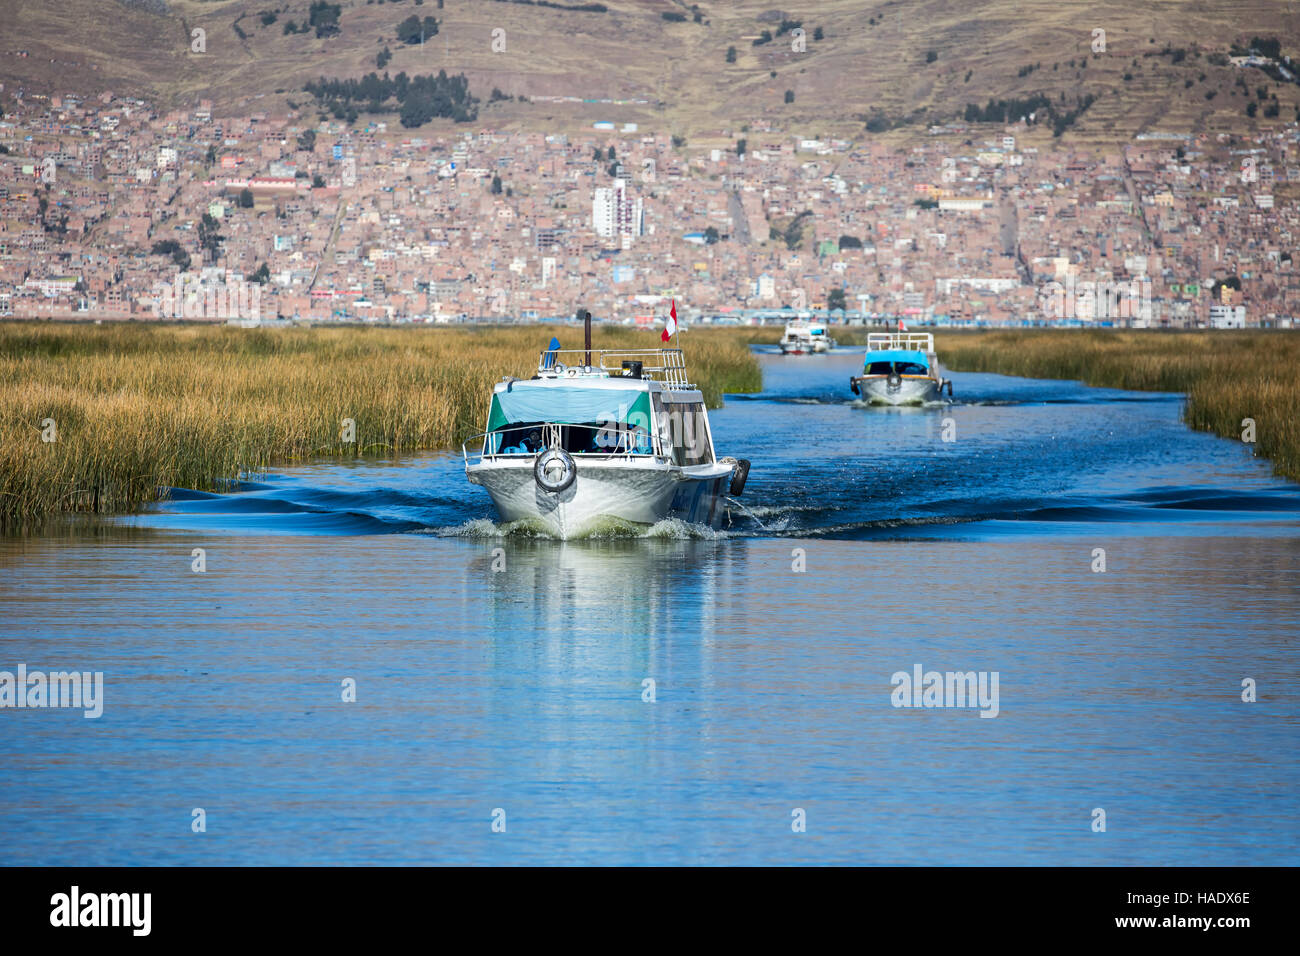 Tourist boats on Lake Titicaca flanked by totora reed fields, City of Puno in background, Puno, Peru Stock Photo